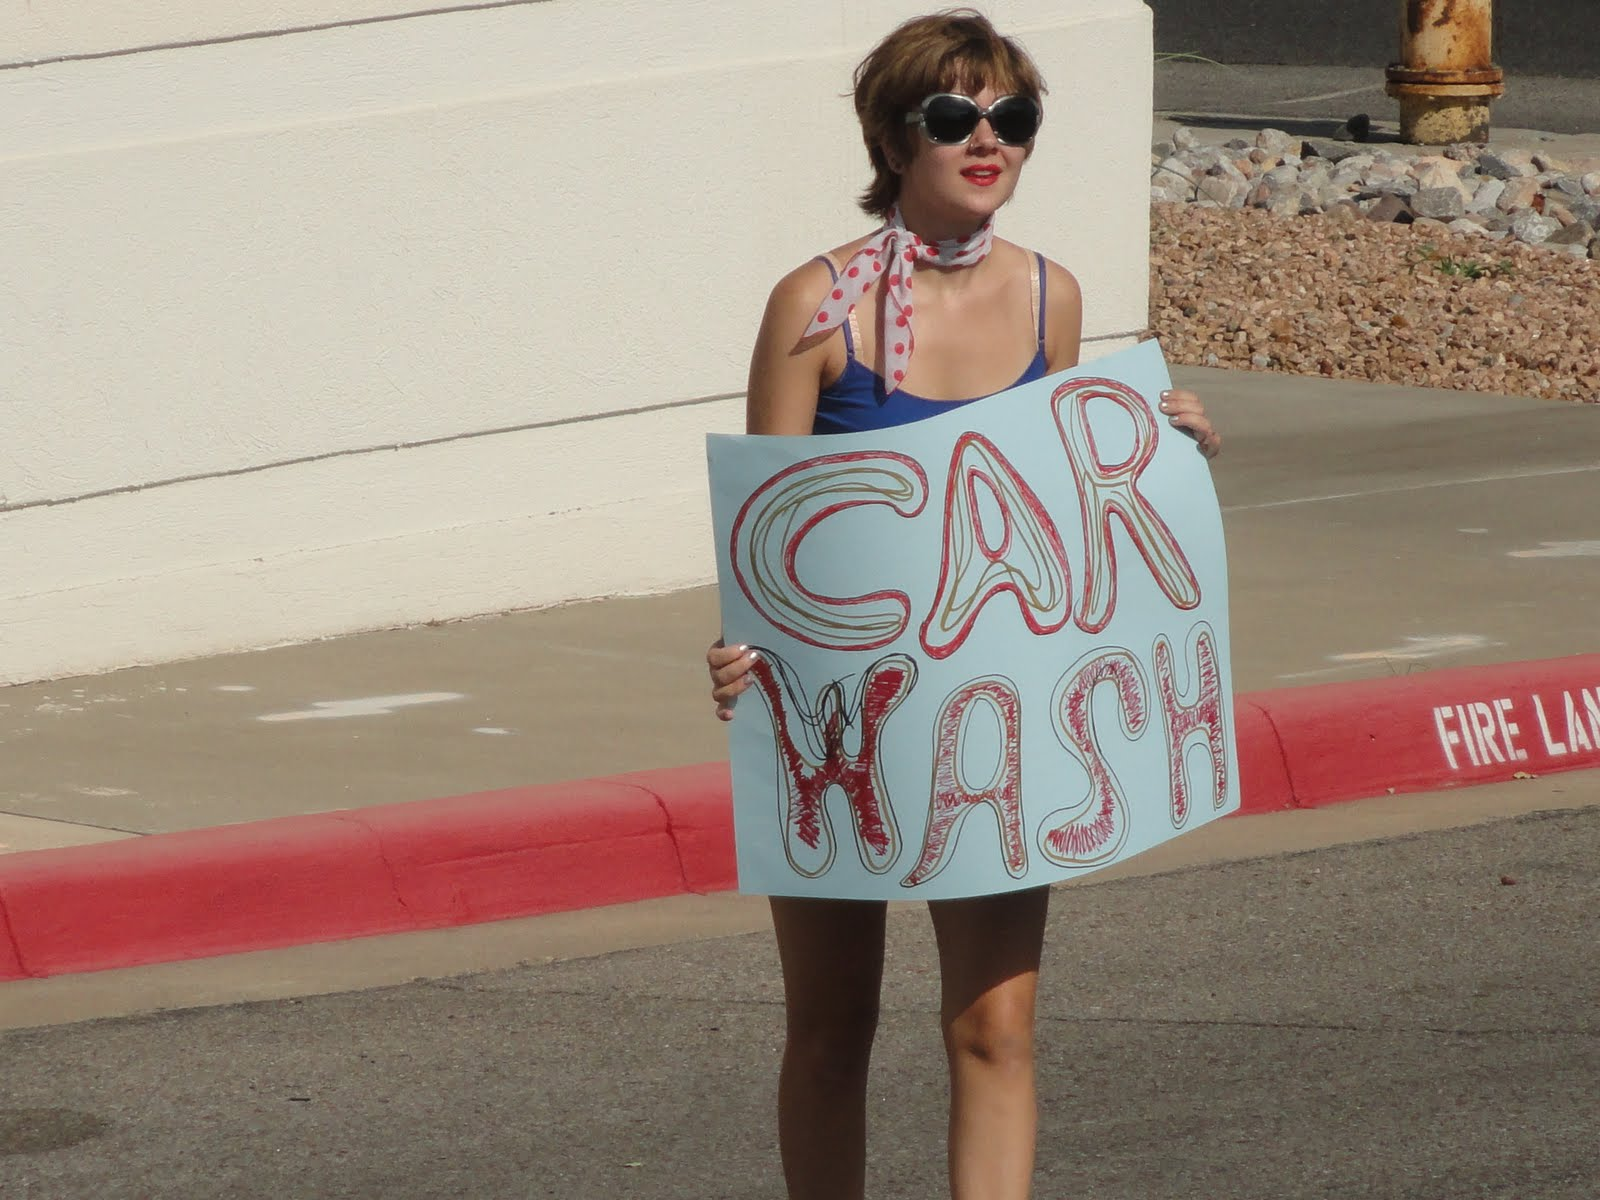 Sandra Dodd: A car wash with singing: sandradodd.blogspot.com/2011/08/car-wash-with-singing.html